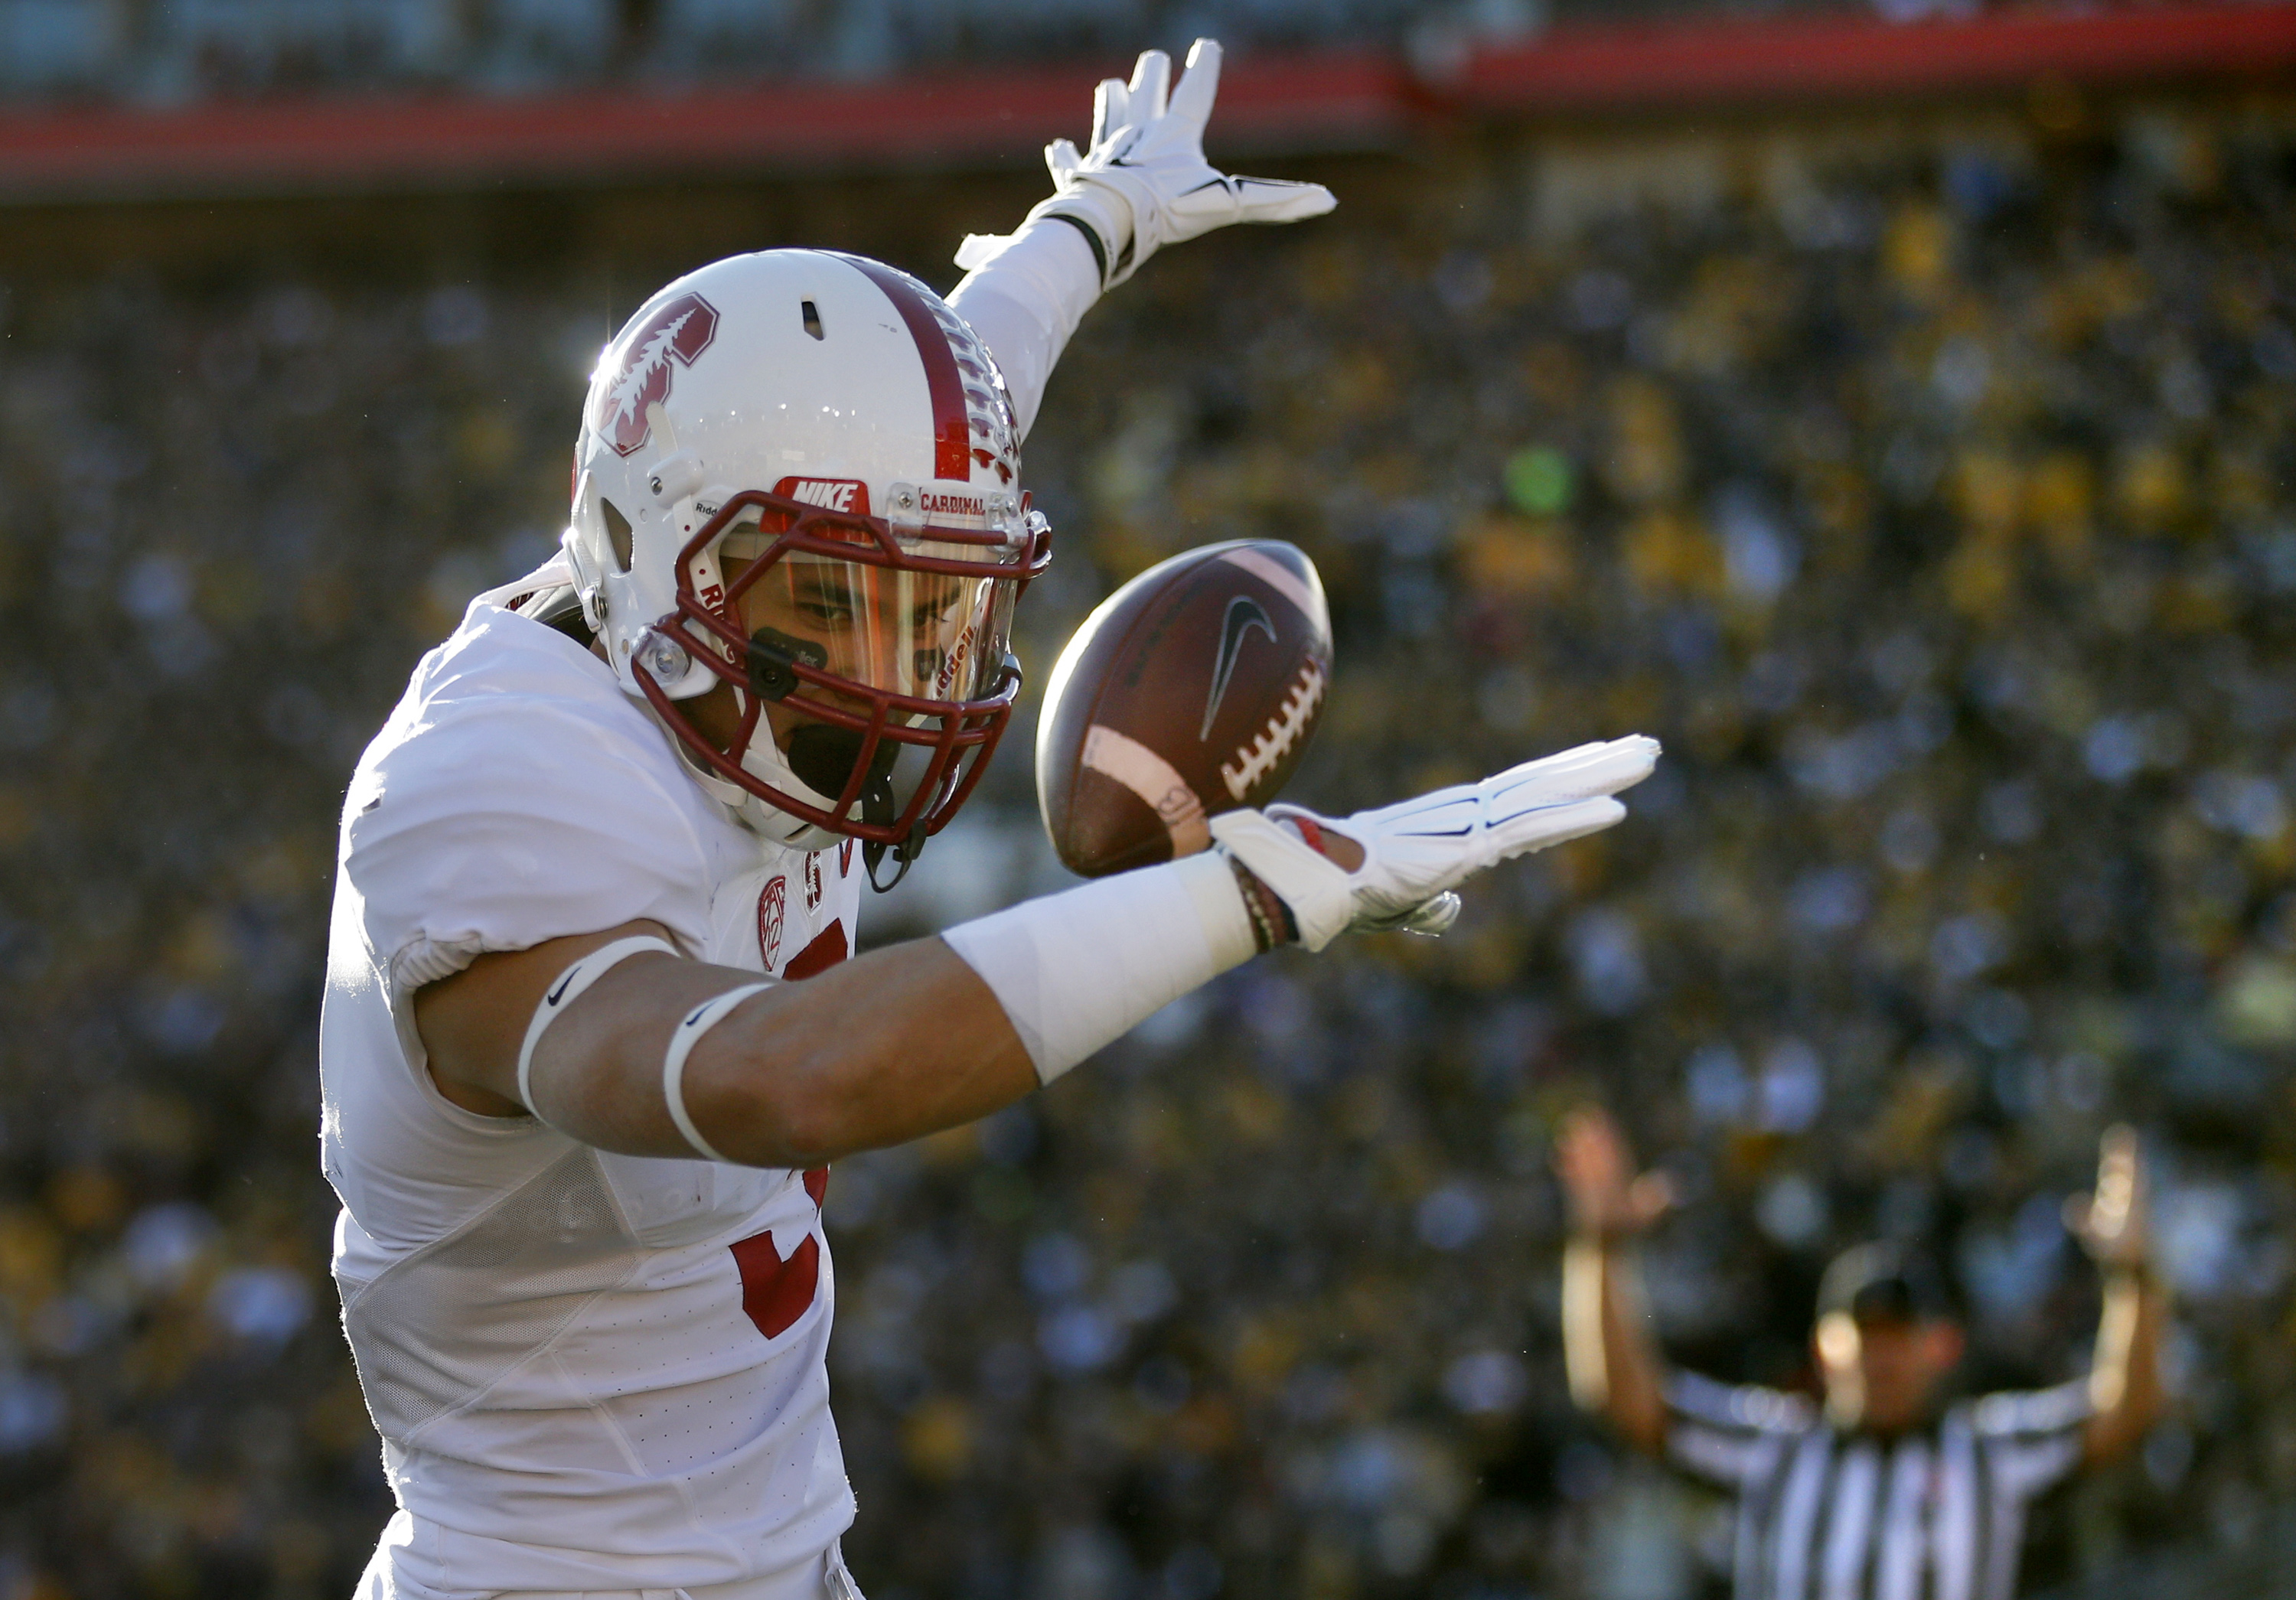 Stanford wide receiver Michael Rector celebrates after scoring against Iowa during the first half of the Rose Bowl NCAA college football game, Friday, Jan. 1, 2016, in Pasadena, Calif. (AP Photo/Jae C. Hong)